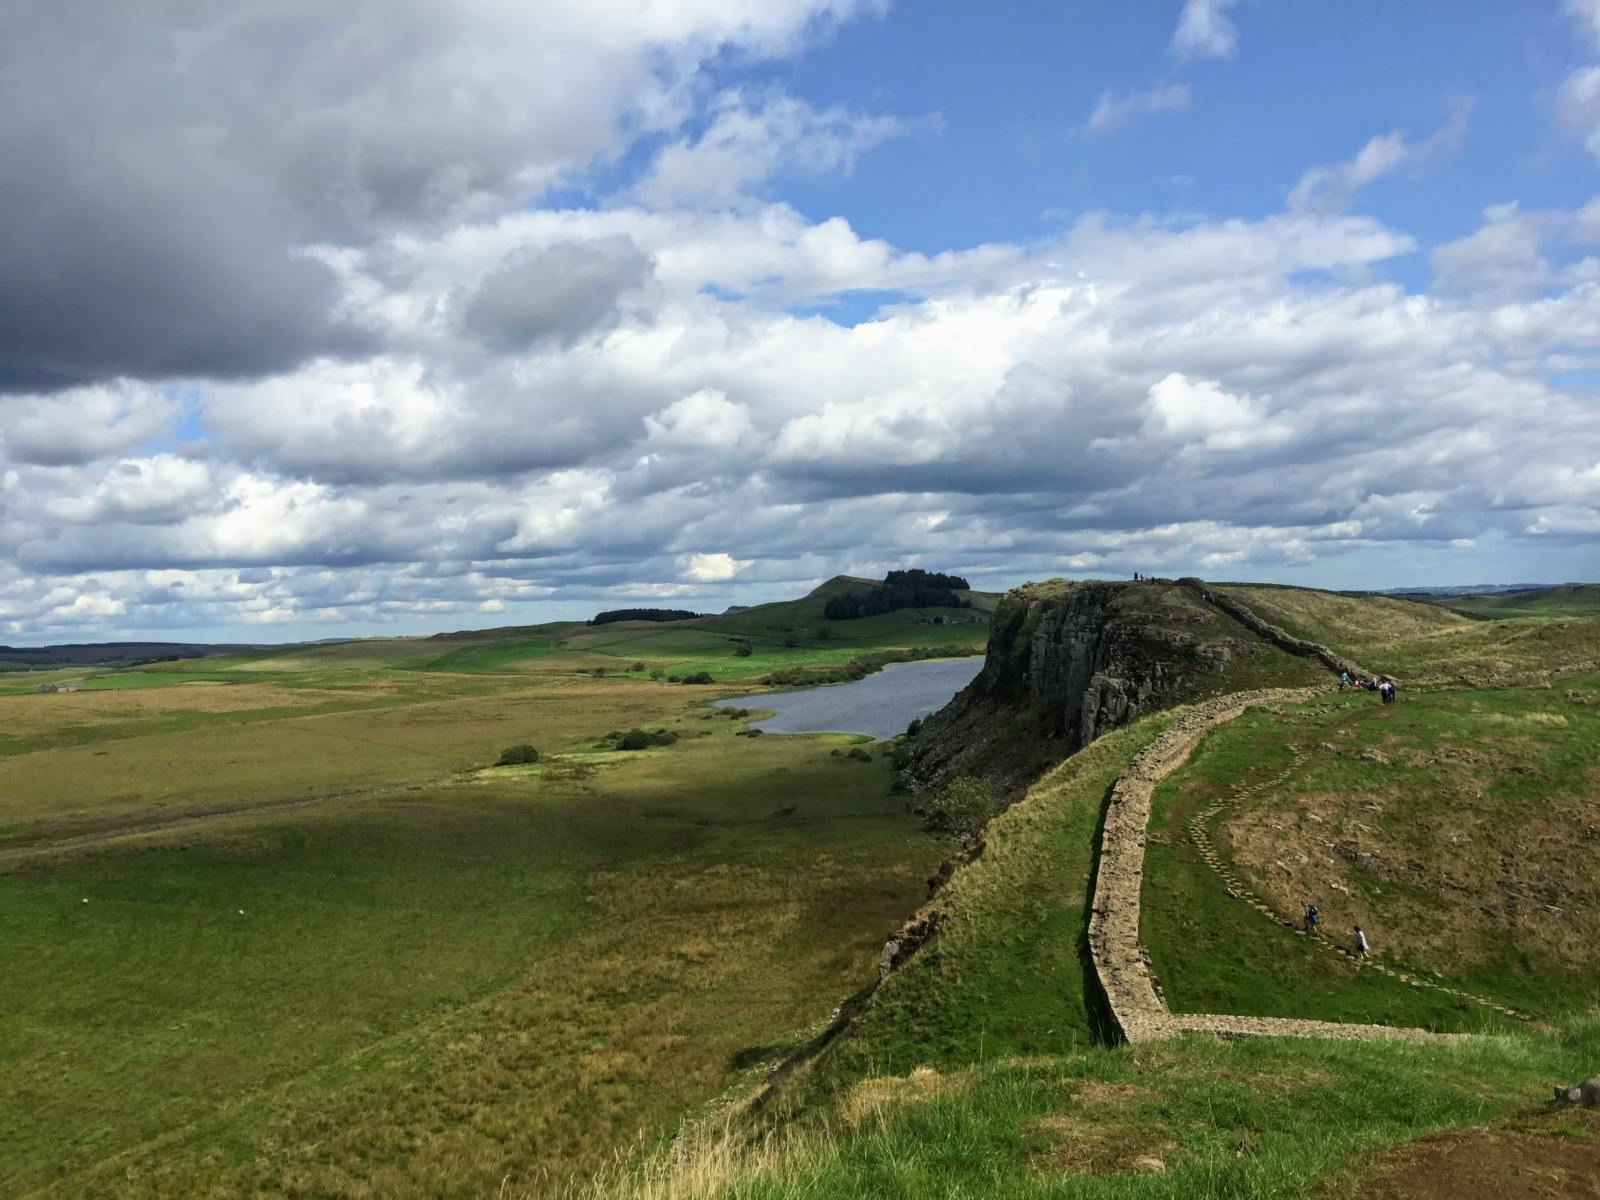 hadrian's wall dramatic landscape